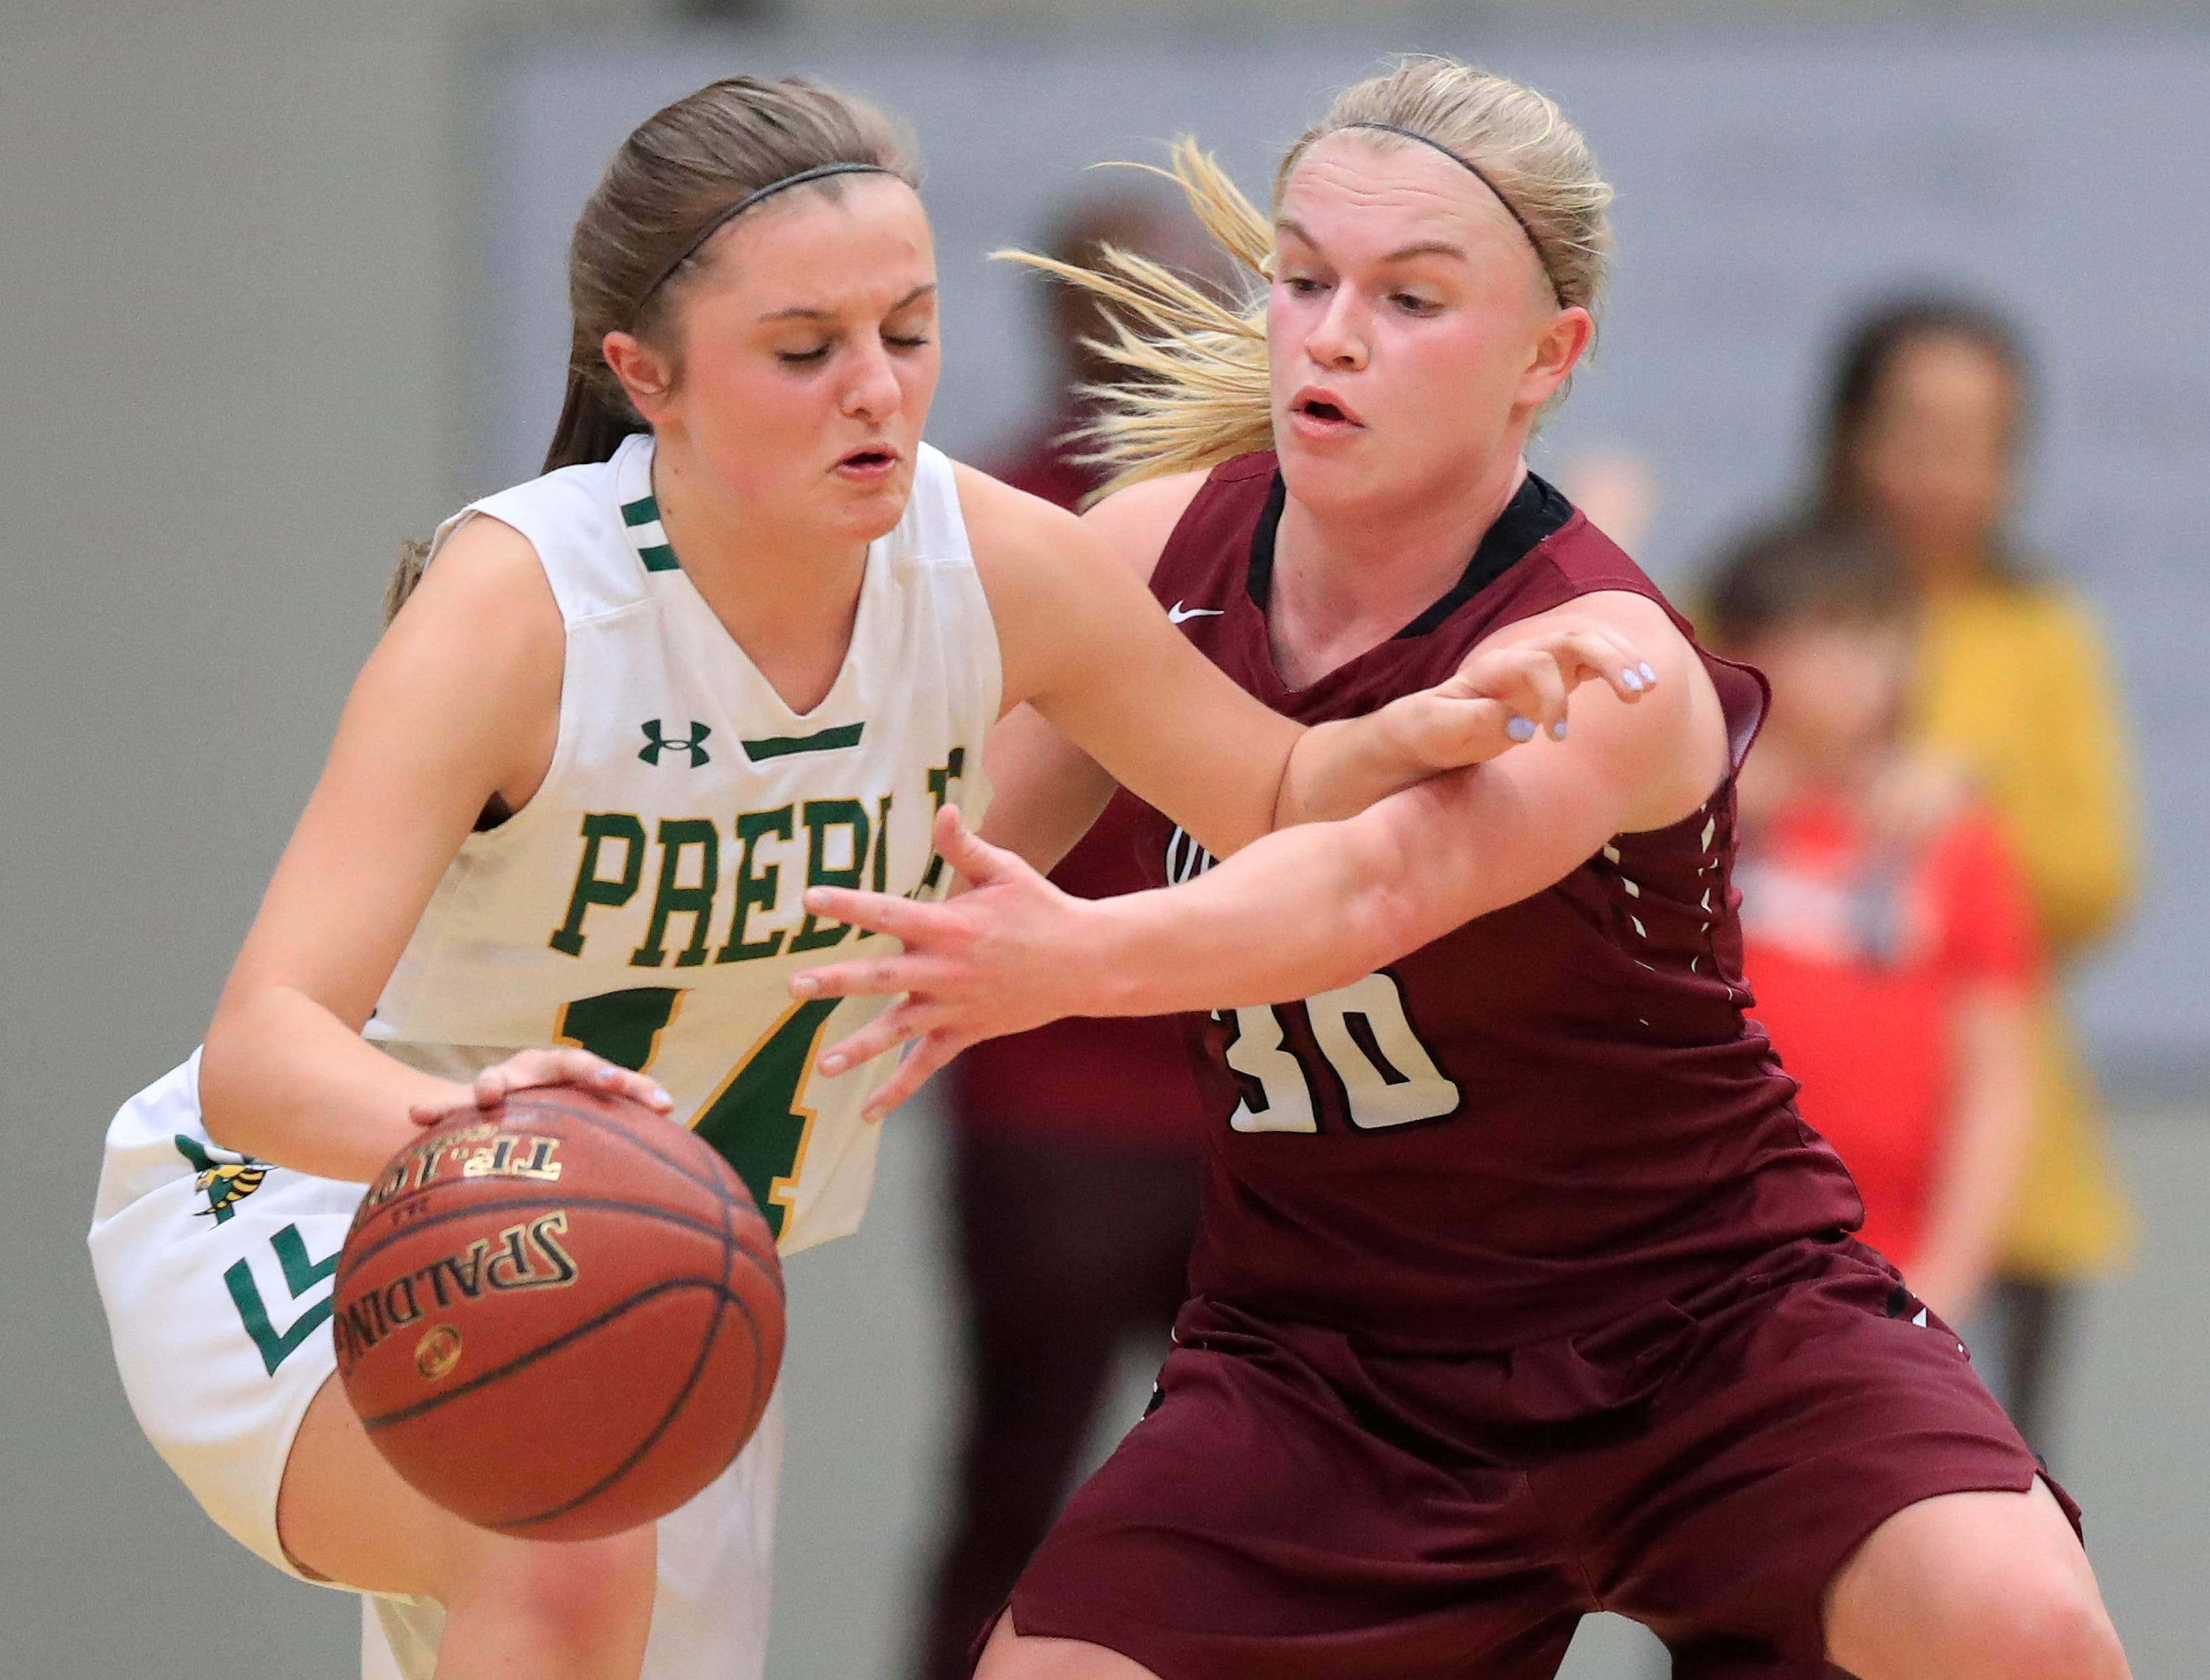 Green Bay Preble's Taylor Sleger (14) dribbles away from De Pere's Rachel Kerkhoff (30) in a girls basketball game at Preble high school on Tuesday, January 8, 2019 in Green Bay, Wis.